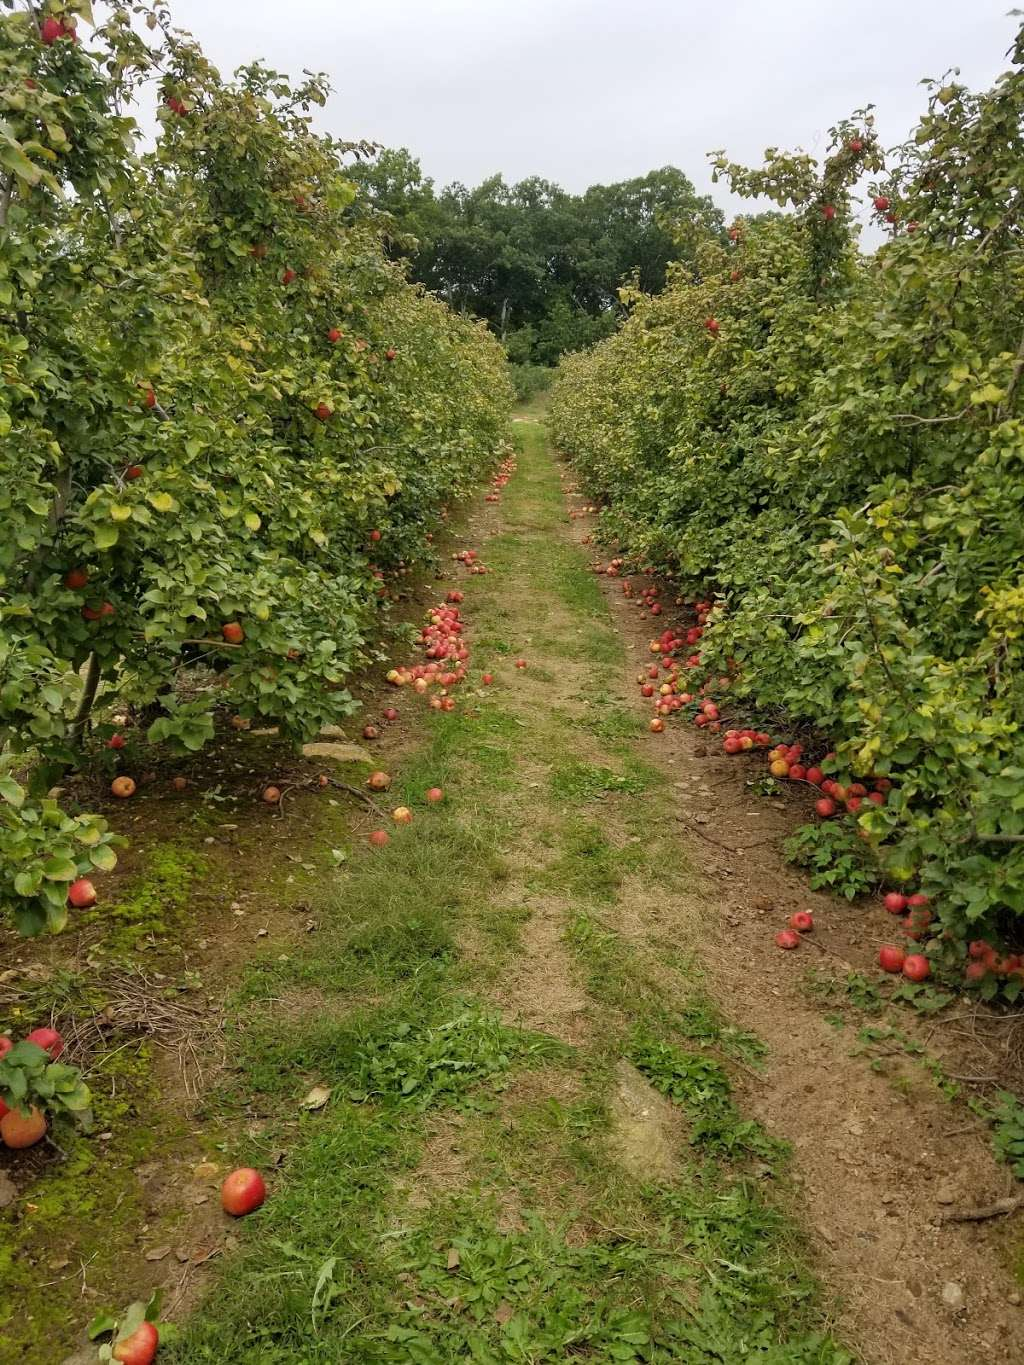 Barden Family Orchard - store  | Photo 6 of 10 | Address: 56 Elmdale Rd, North Scituate, RI 02857, USA | Phone: (401) 934-1413